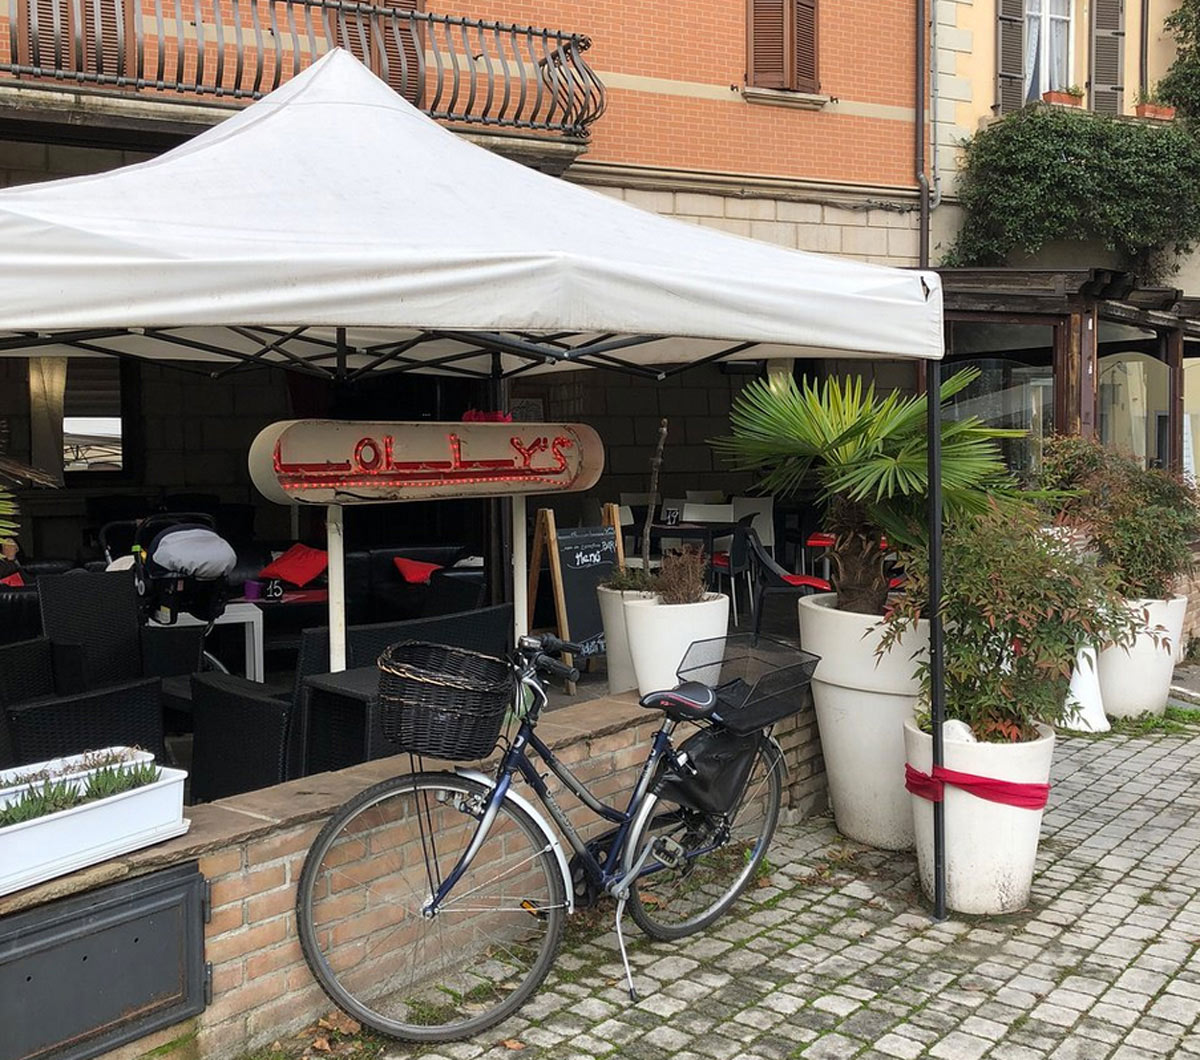 Il Lolly Bar di Castell'Arquato